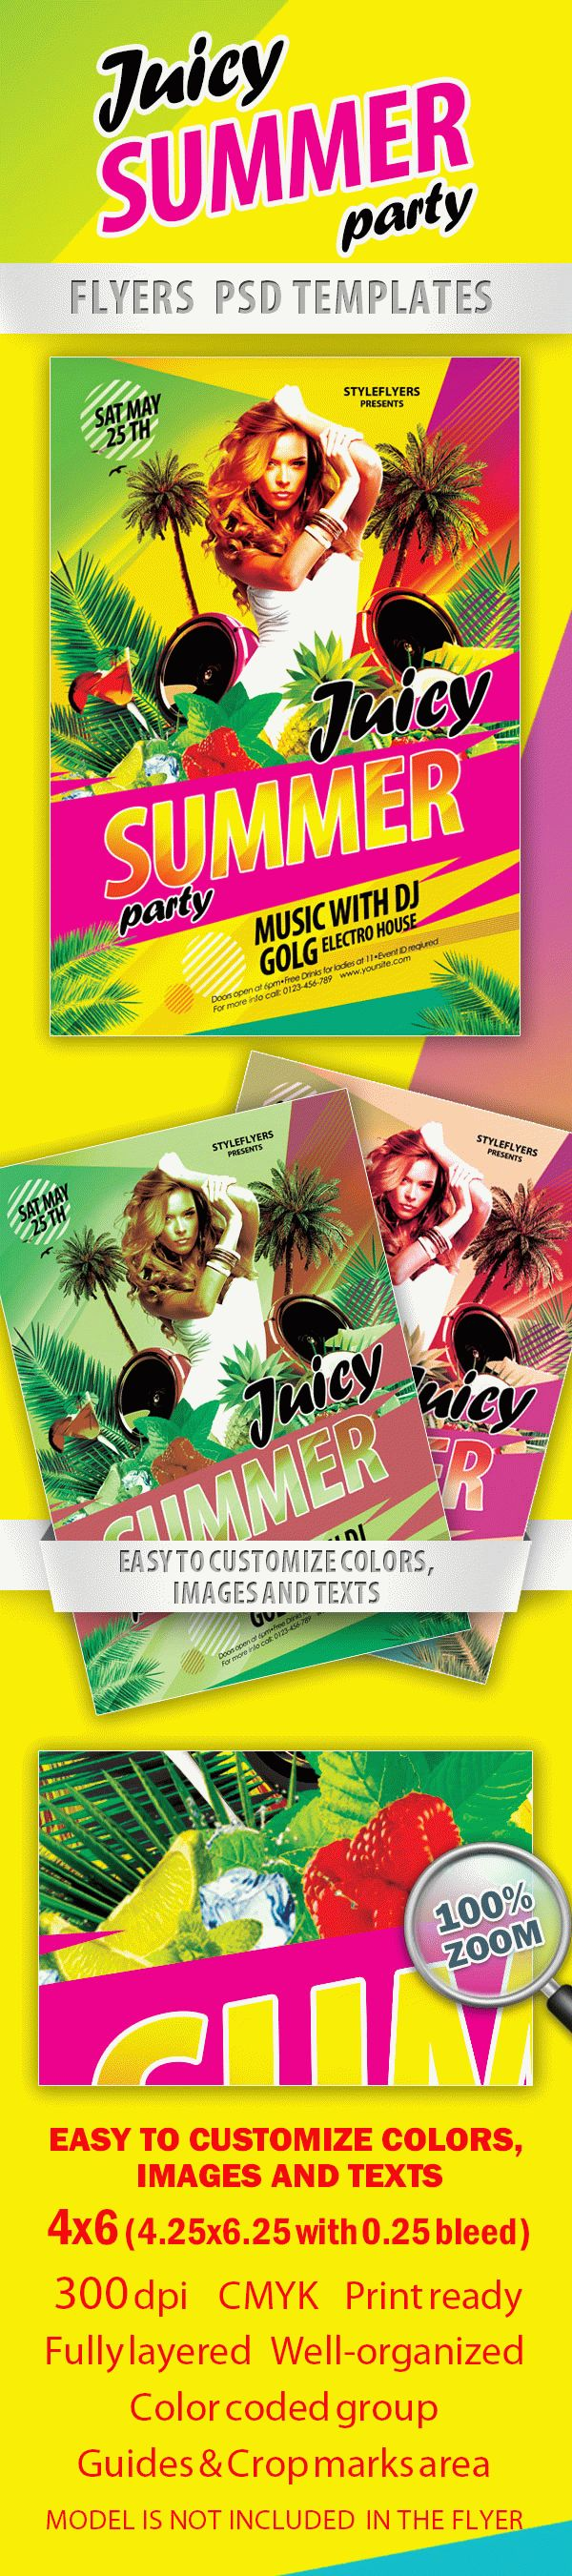 Juicy Summer Paty Flyer